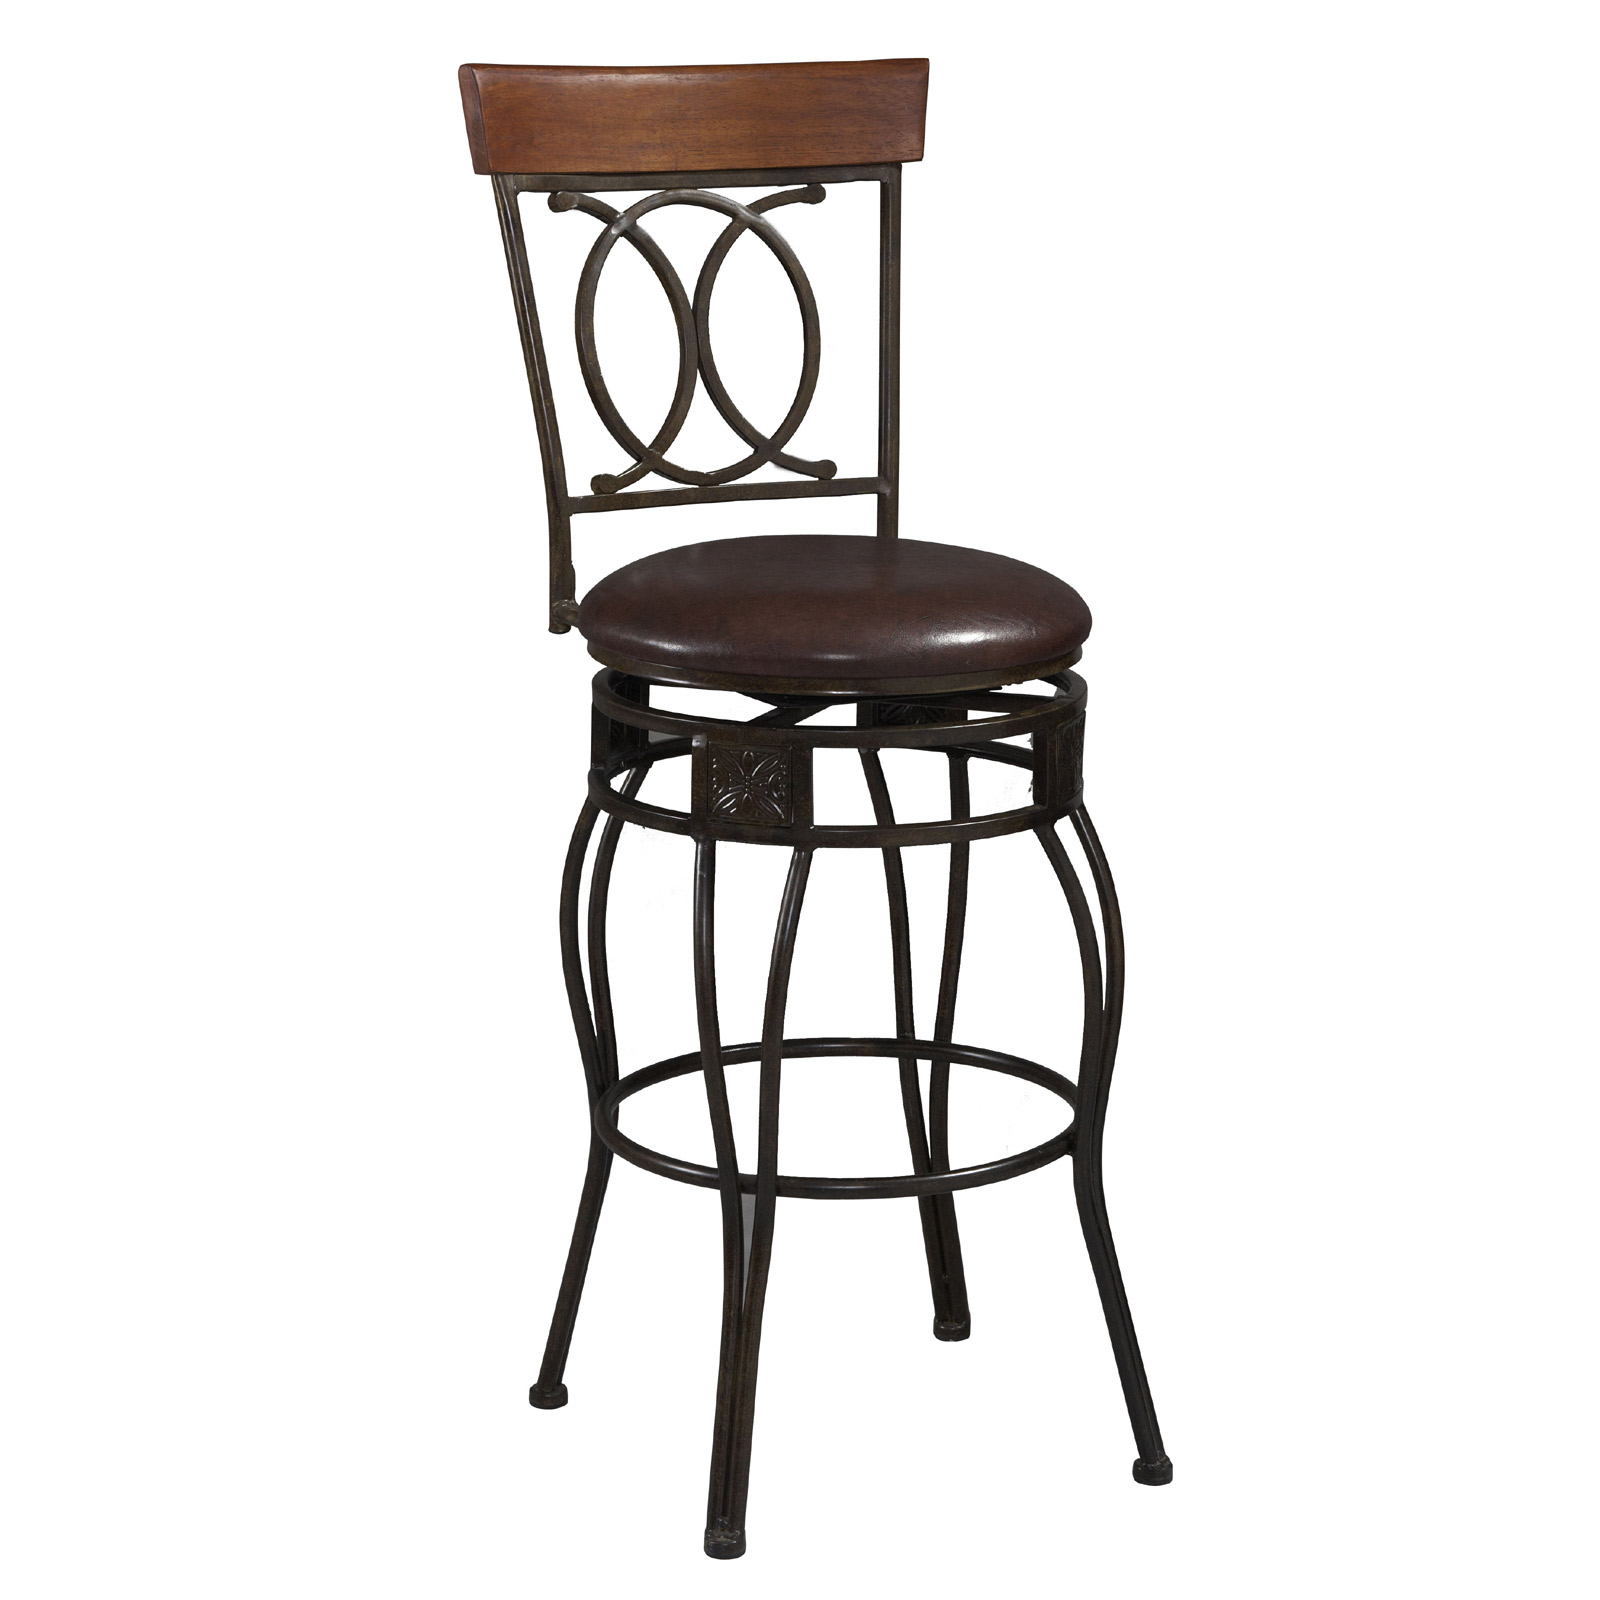 Linon Home Decor Bar Stools